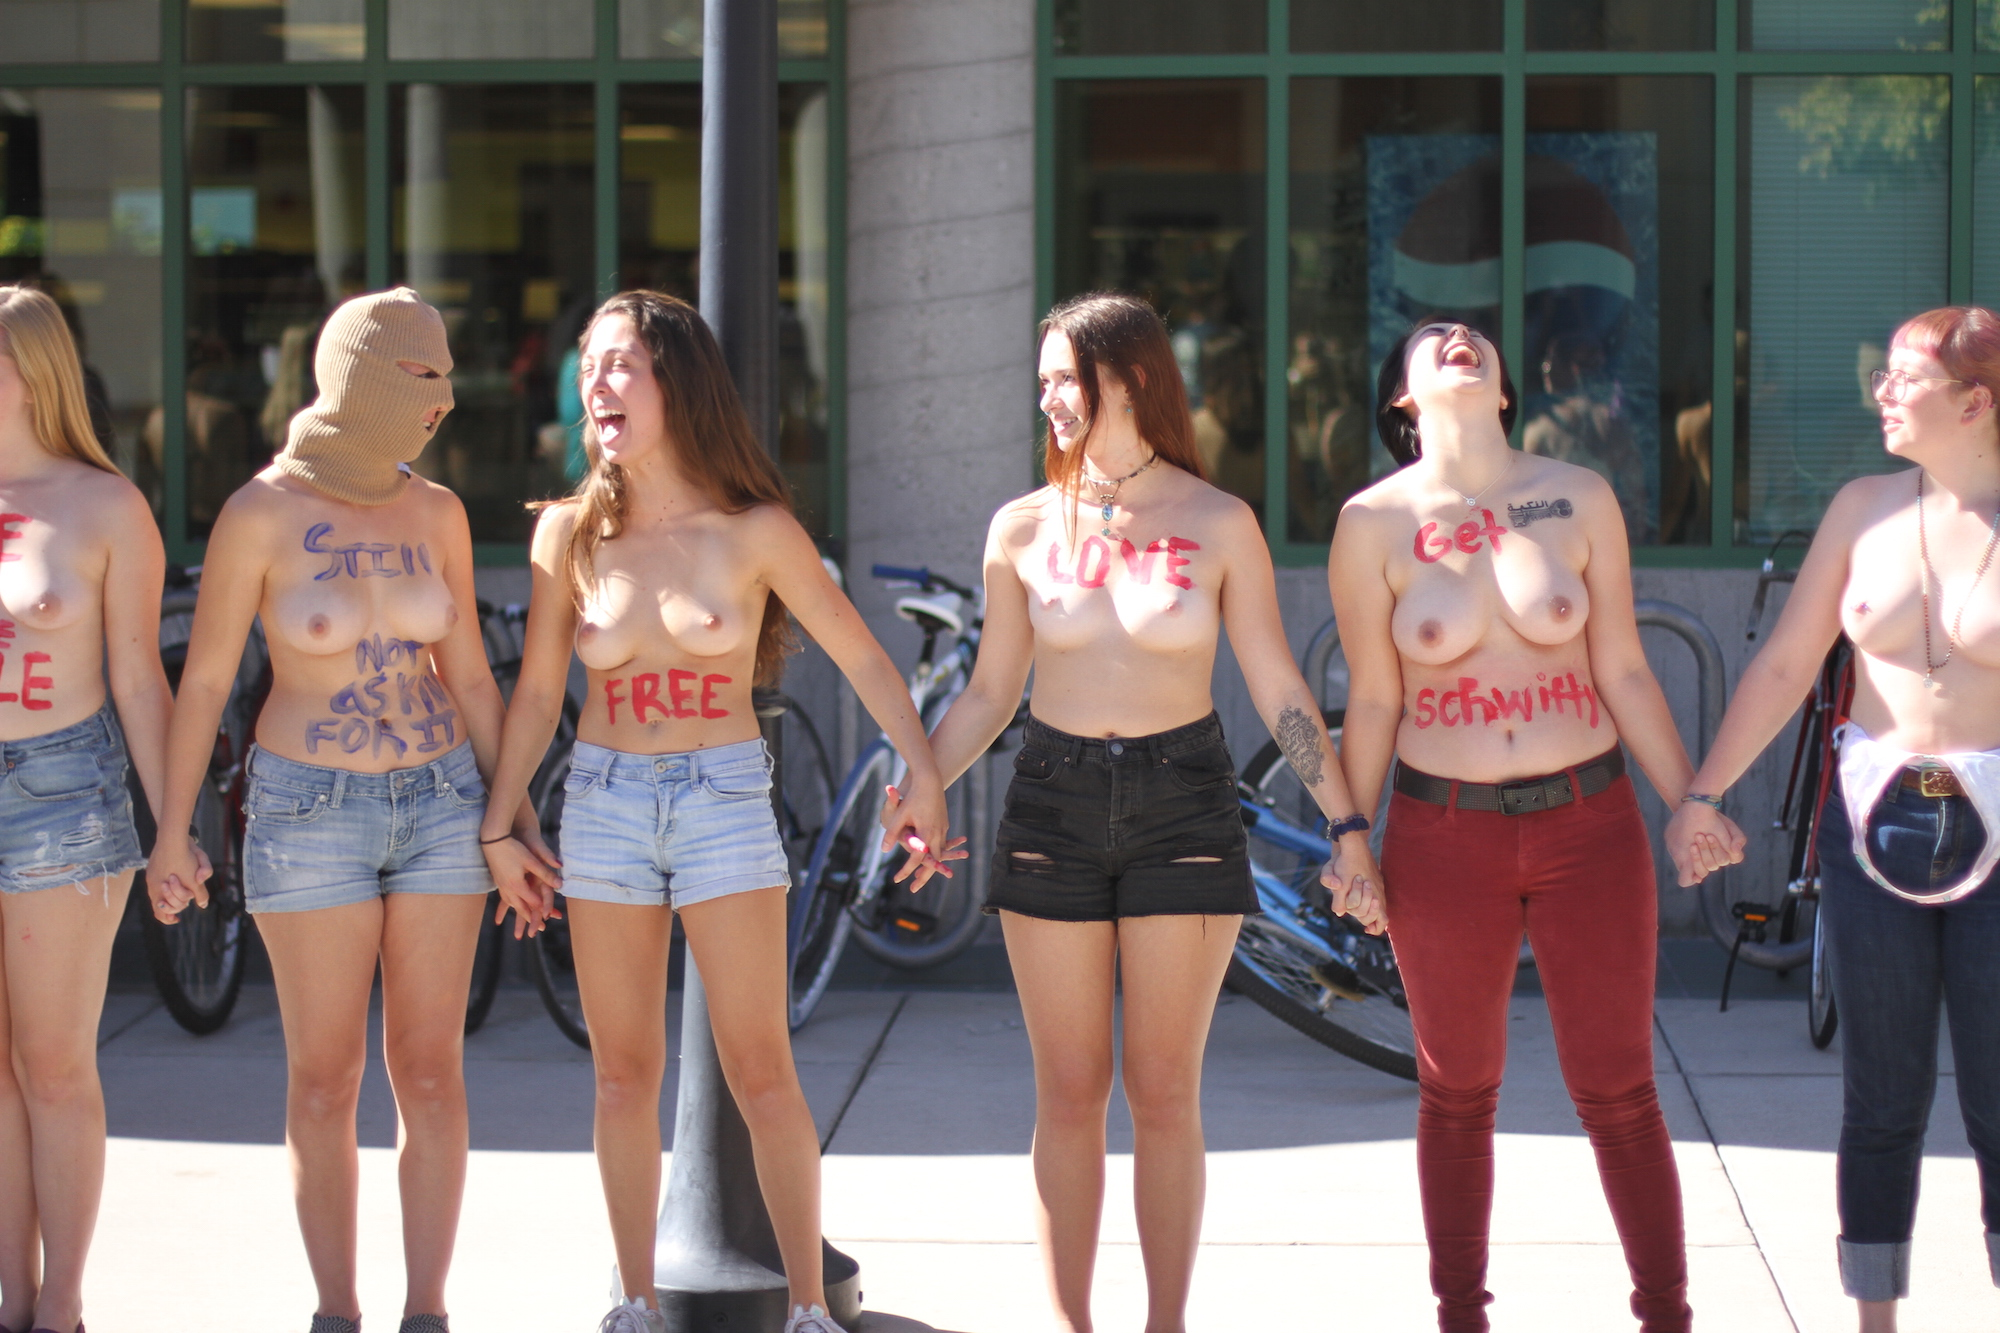 Campus Activists Stage Second Free the Nipple Demonstration